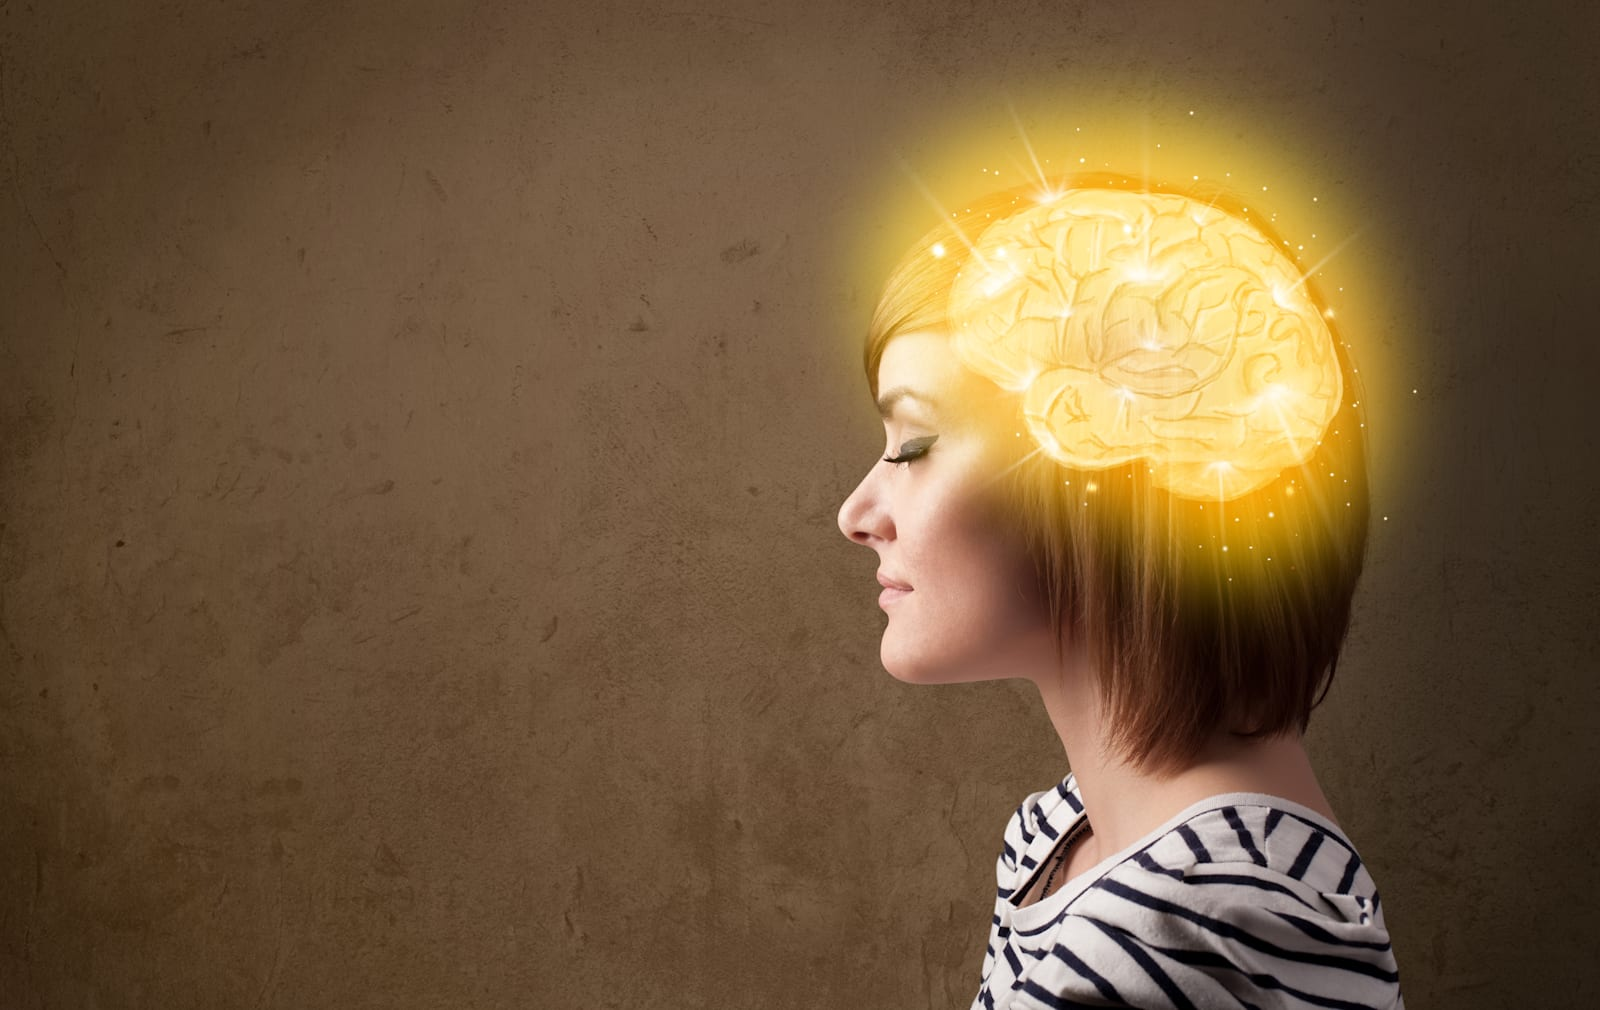 marketing changes your brain The human brain is a marvelous thing it's astounding in its power and baffling in its limitations i've long believed that the power of conversion optimization is found in three main things.